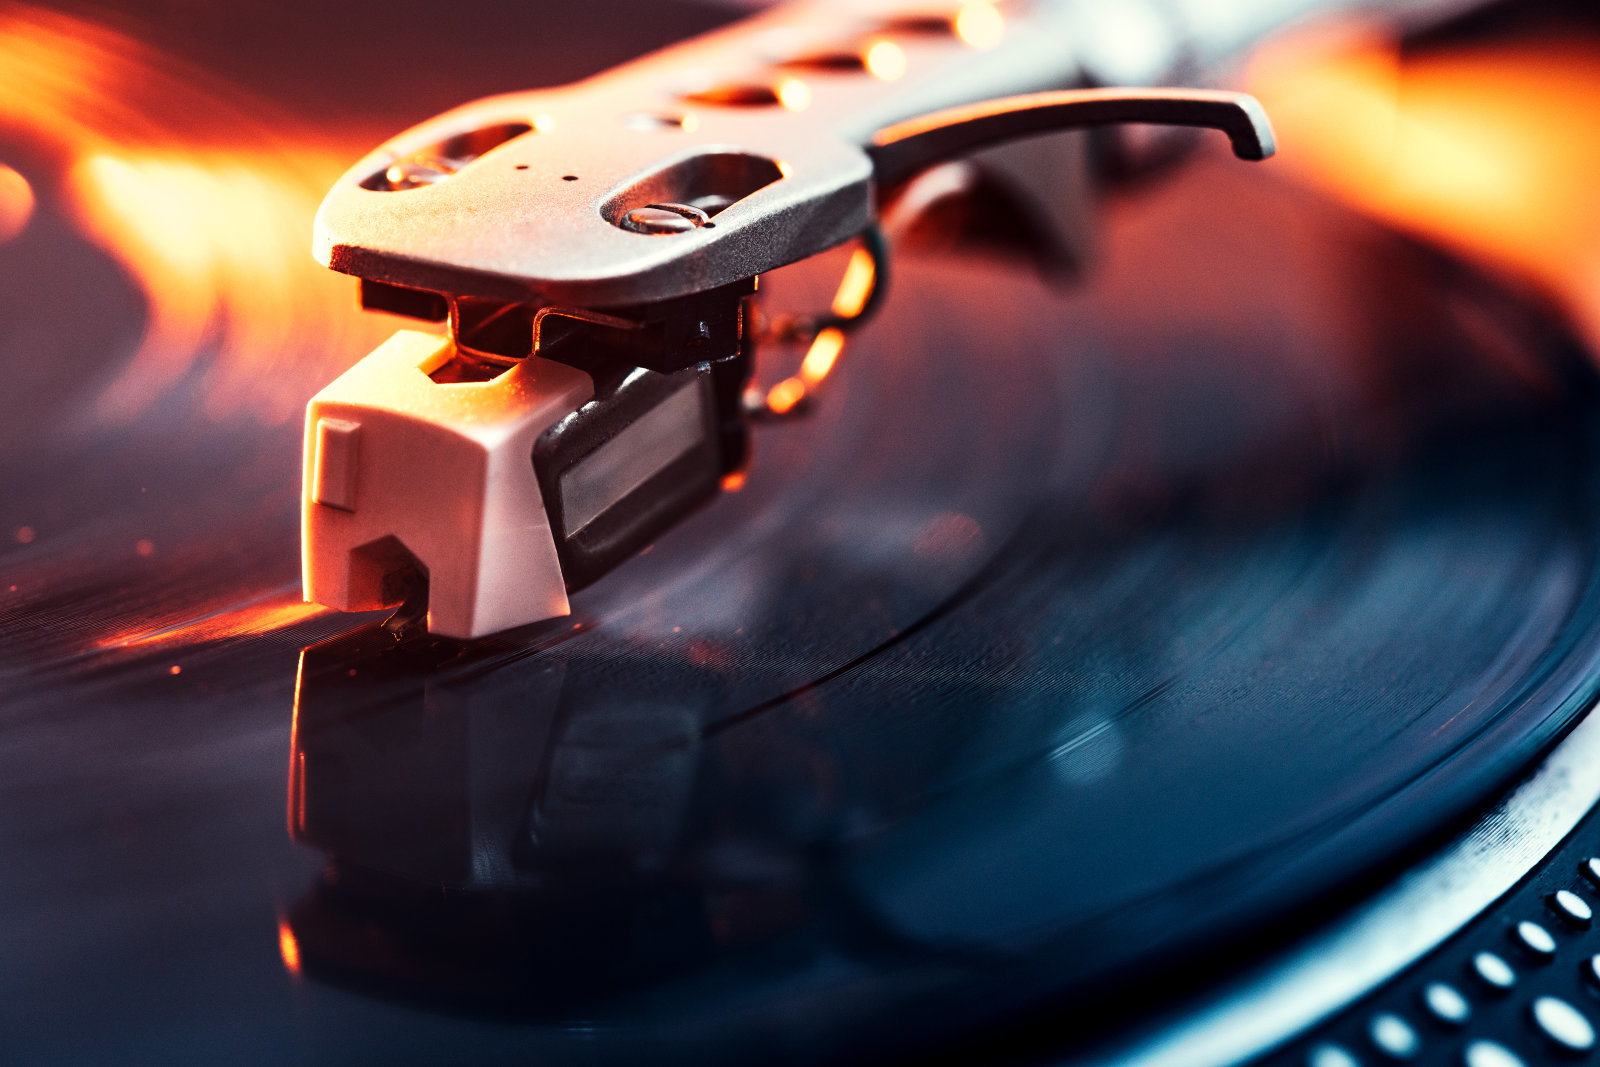 A close up shot of a running record player spinning out some music, dramatically lit with orange light.  Horizontal with copy space.